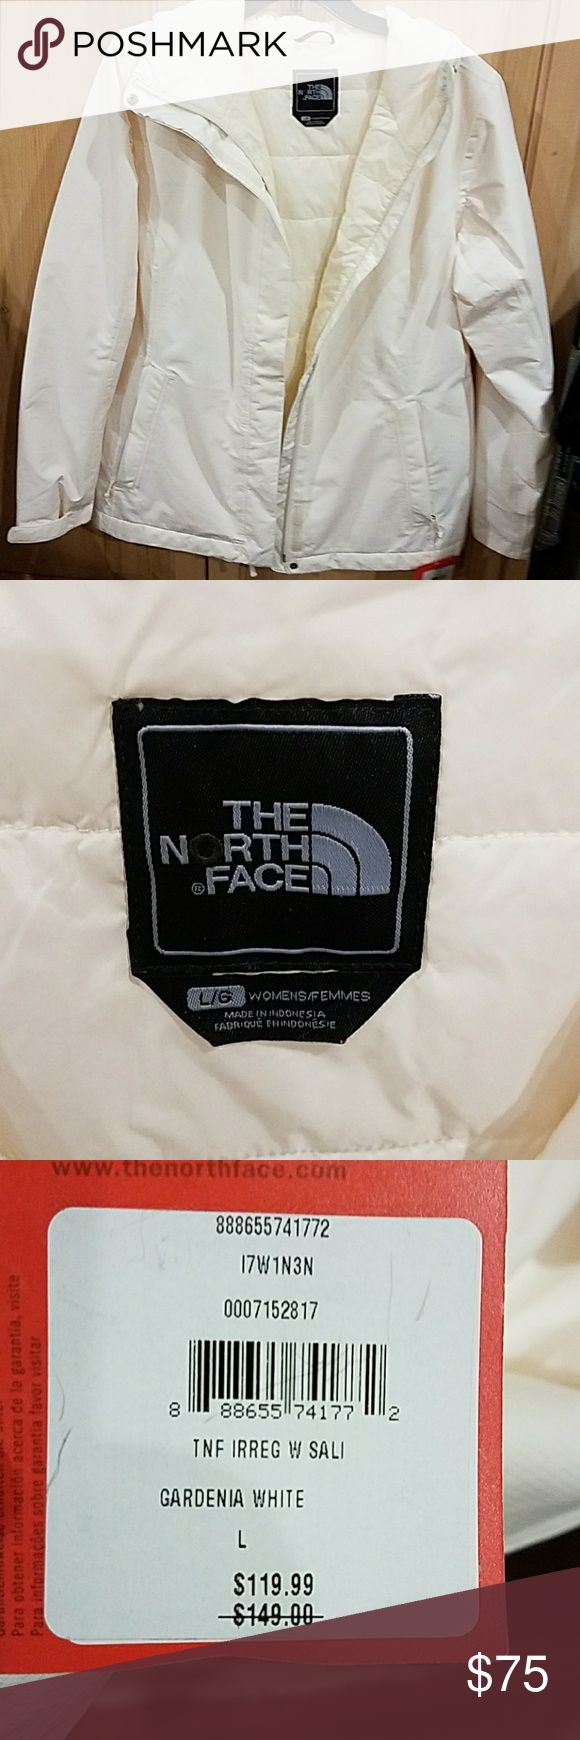 THE NORTH FACE Hyvent Salita Jacket Large NWT NEW WITH TAGS. I purchased this to use as an outer shell on my puffer jacket but color did not match up it can be worn by itself. . It was purchased at an outlet as a final sale. The color on tag is Gardenia White so this is going to have more of the peach ivory undertones. Style is Salita HYVENT and is full zip front with hood. Tag shows actual price paid for this jacket. The North Face Jackets & Coats